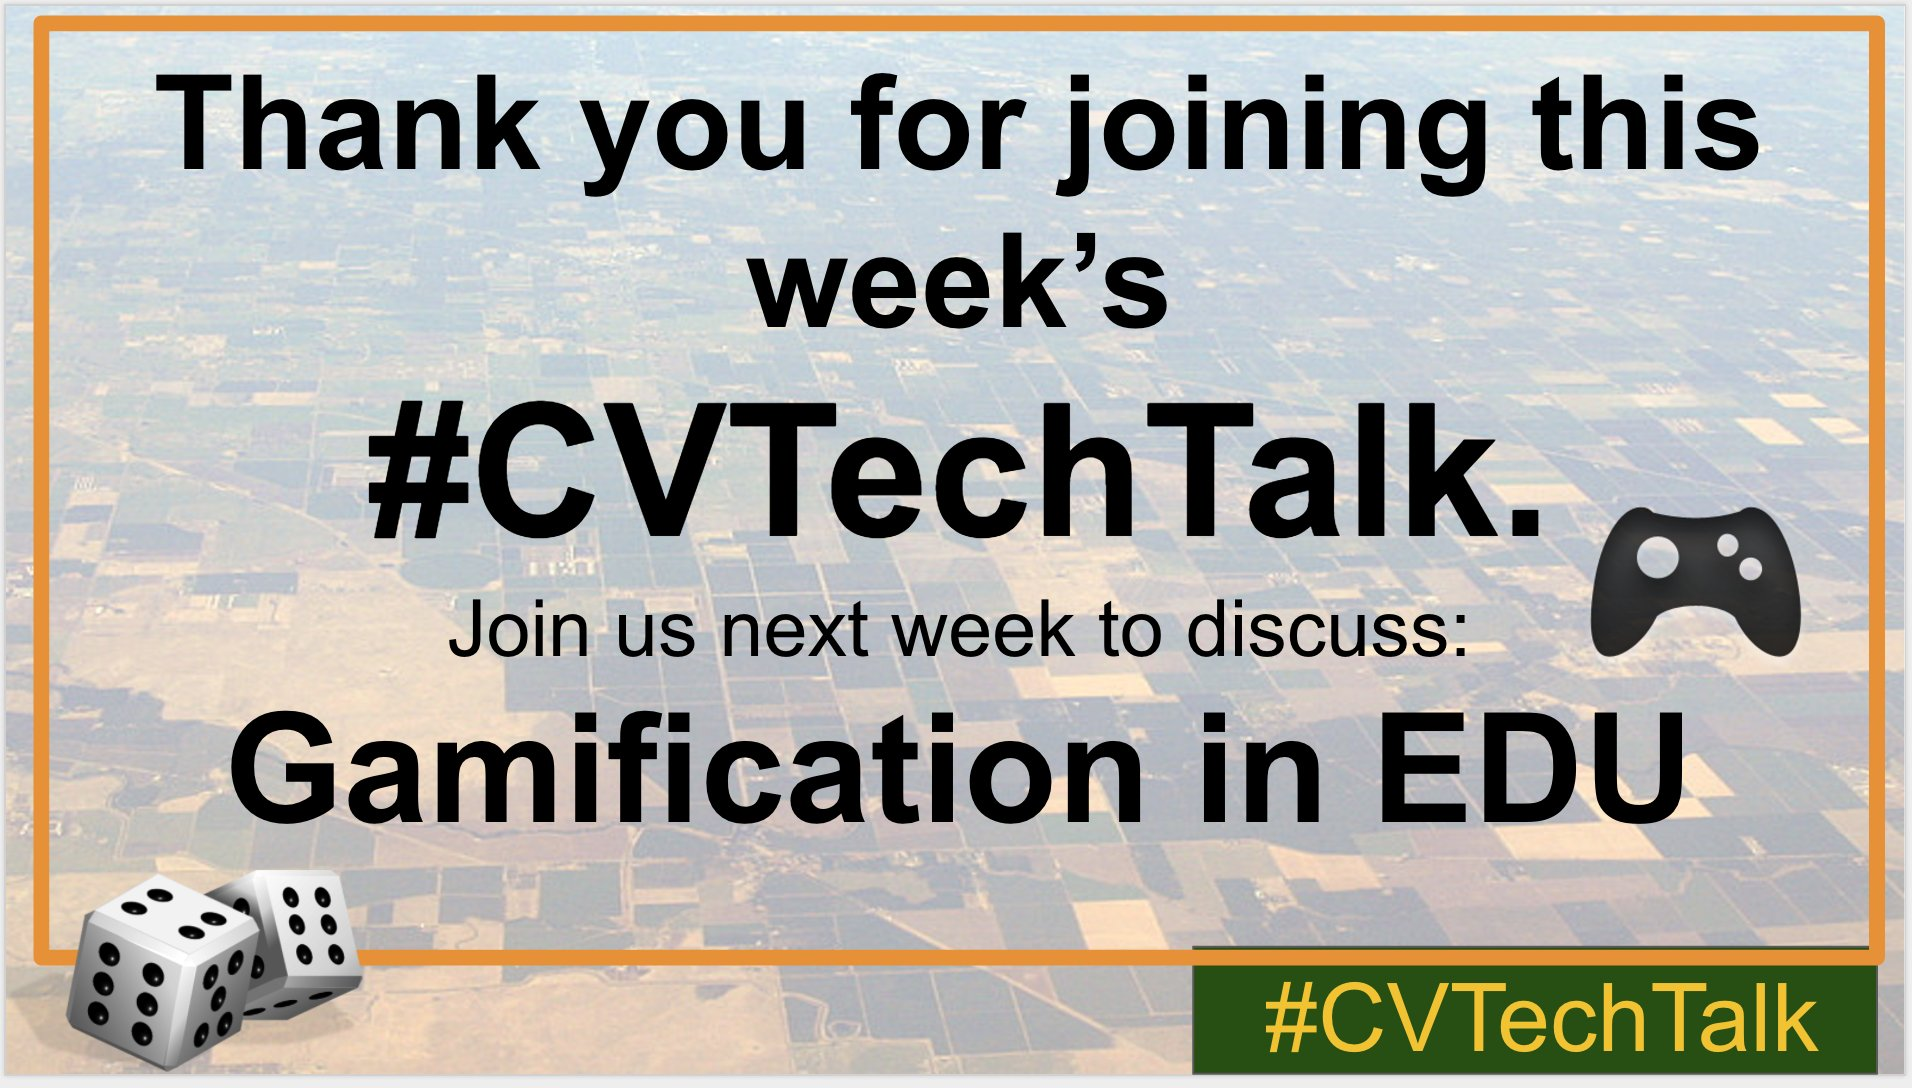 Thank you for joining this week's #cvtechtalk. Join us next week to discuss: Gamification in EDU https://t.co/K2SWi3XIGs